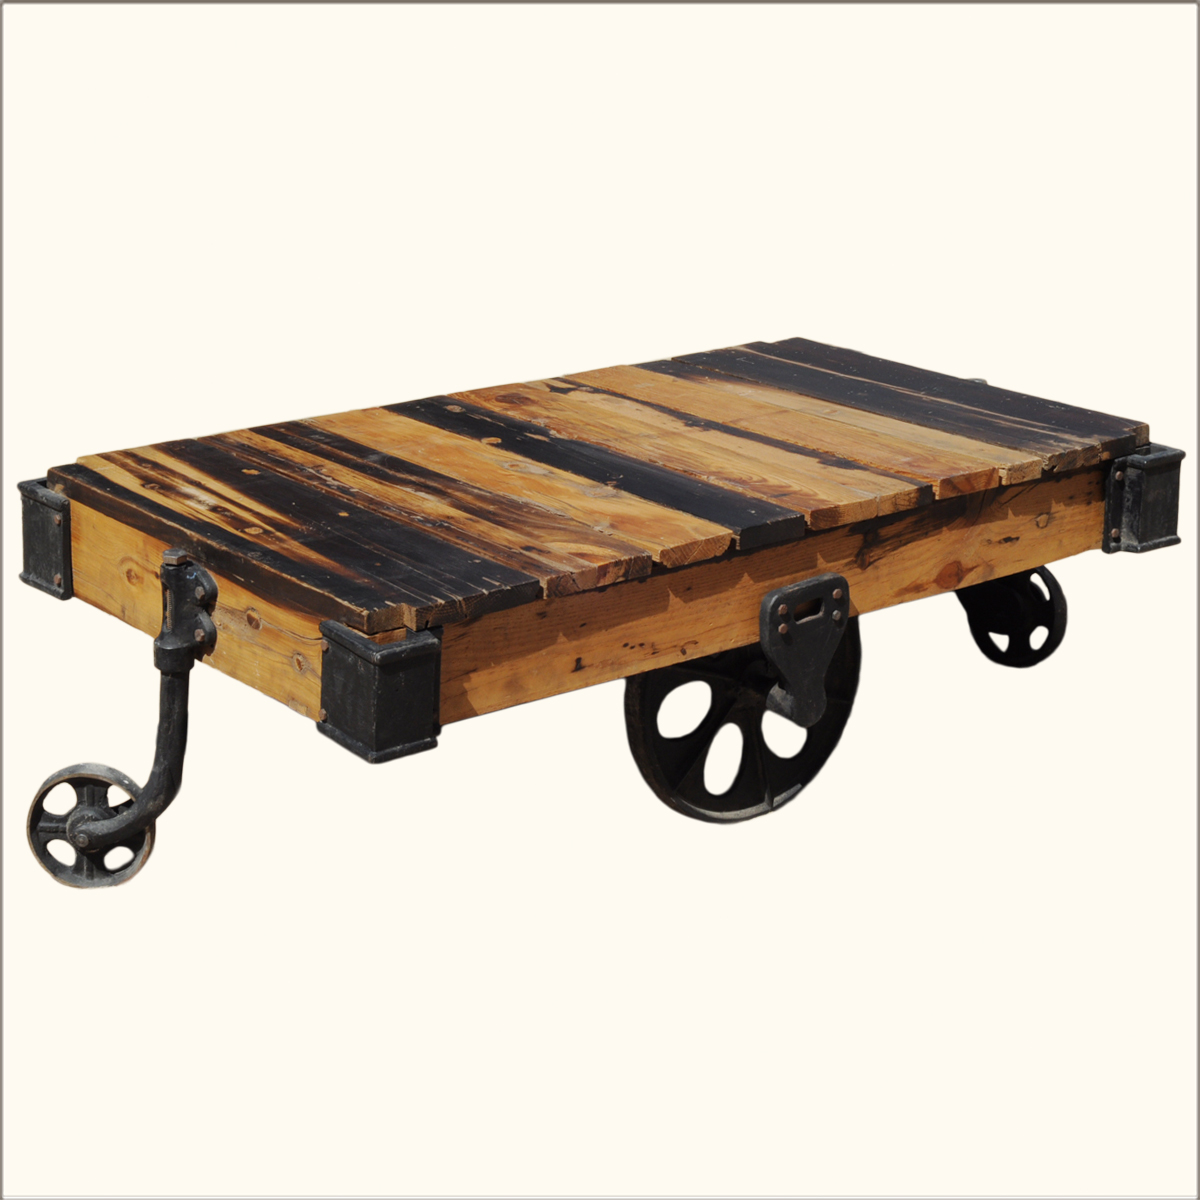 Rustic Reclaimed Wood Factory Cart Coffee Table On Wheel EBay